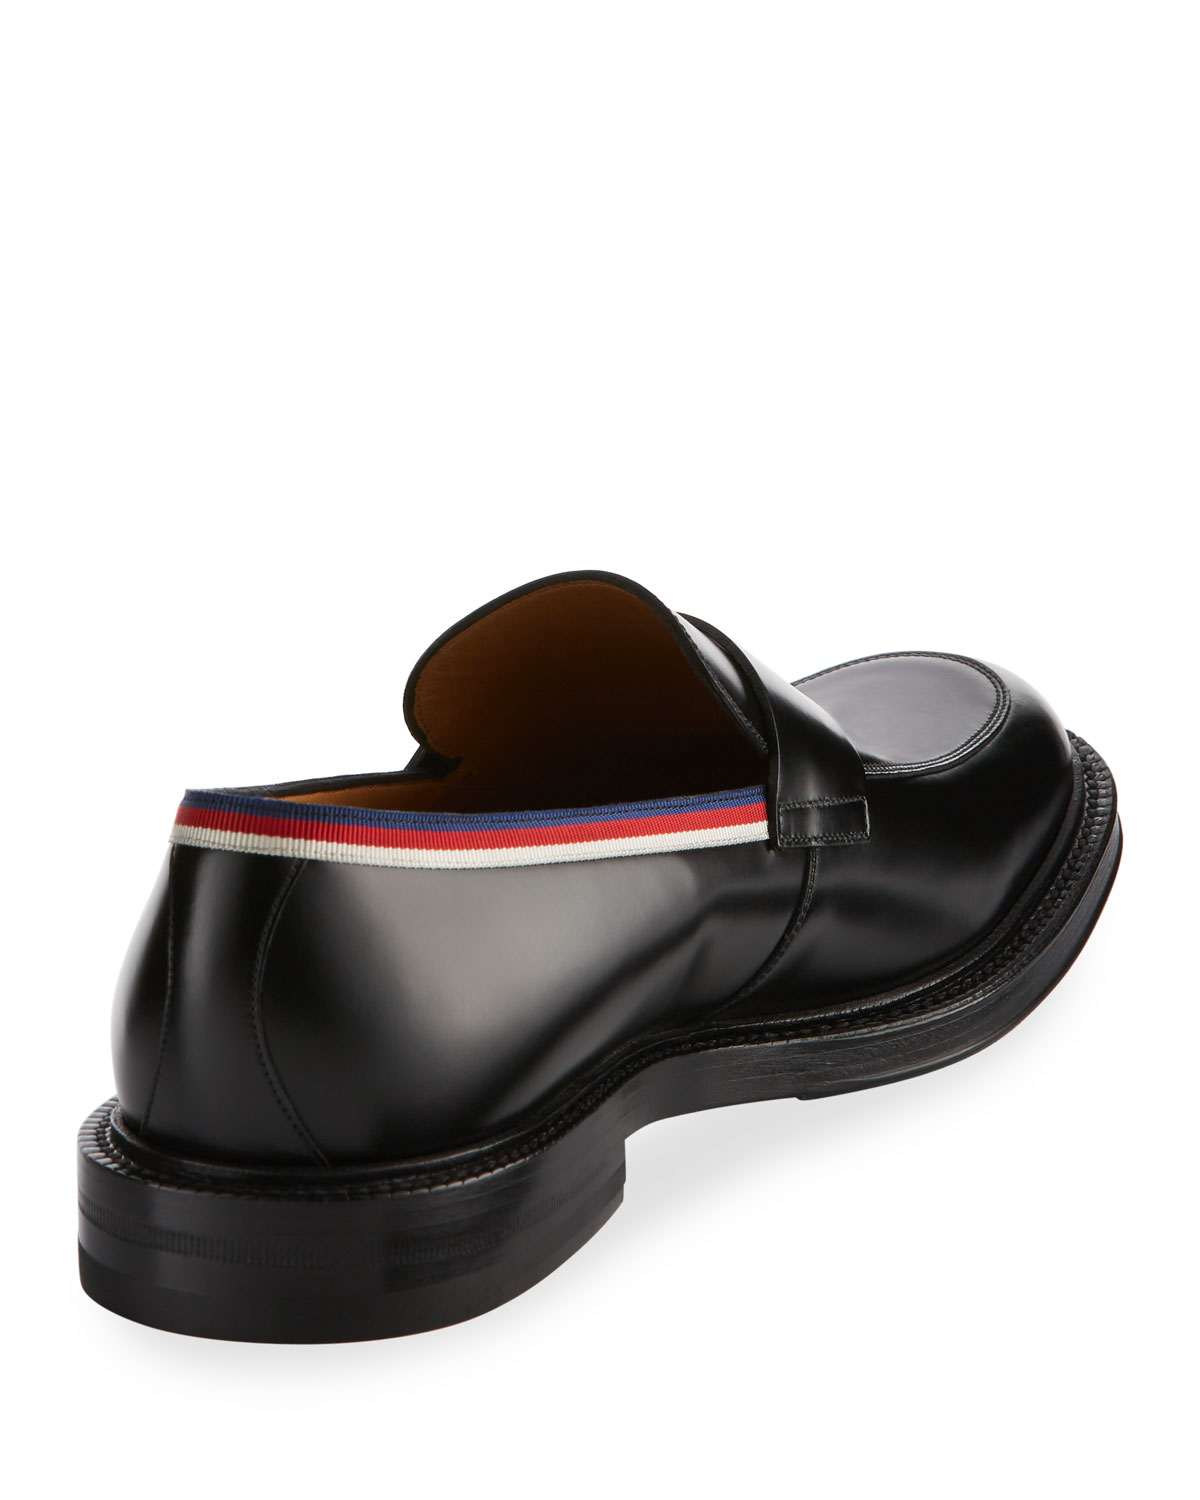 Gucci Beyond Leather Loafer   Neiman Marcus